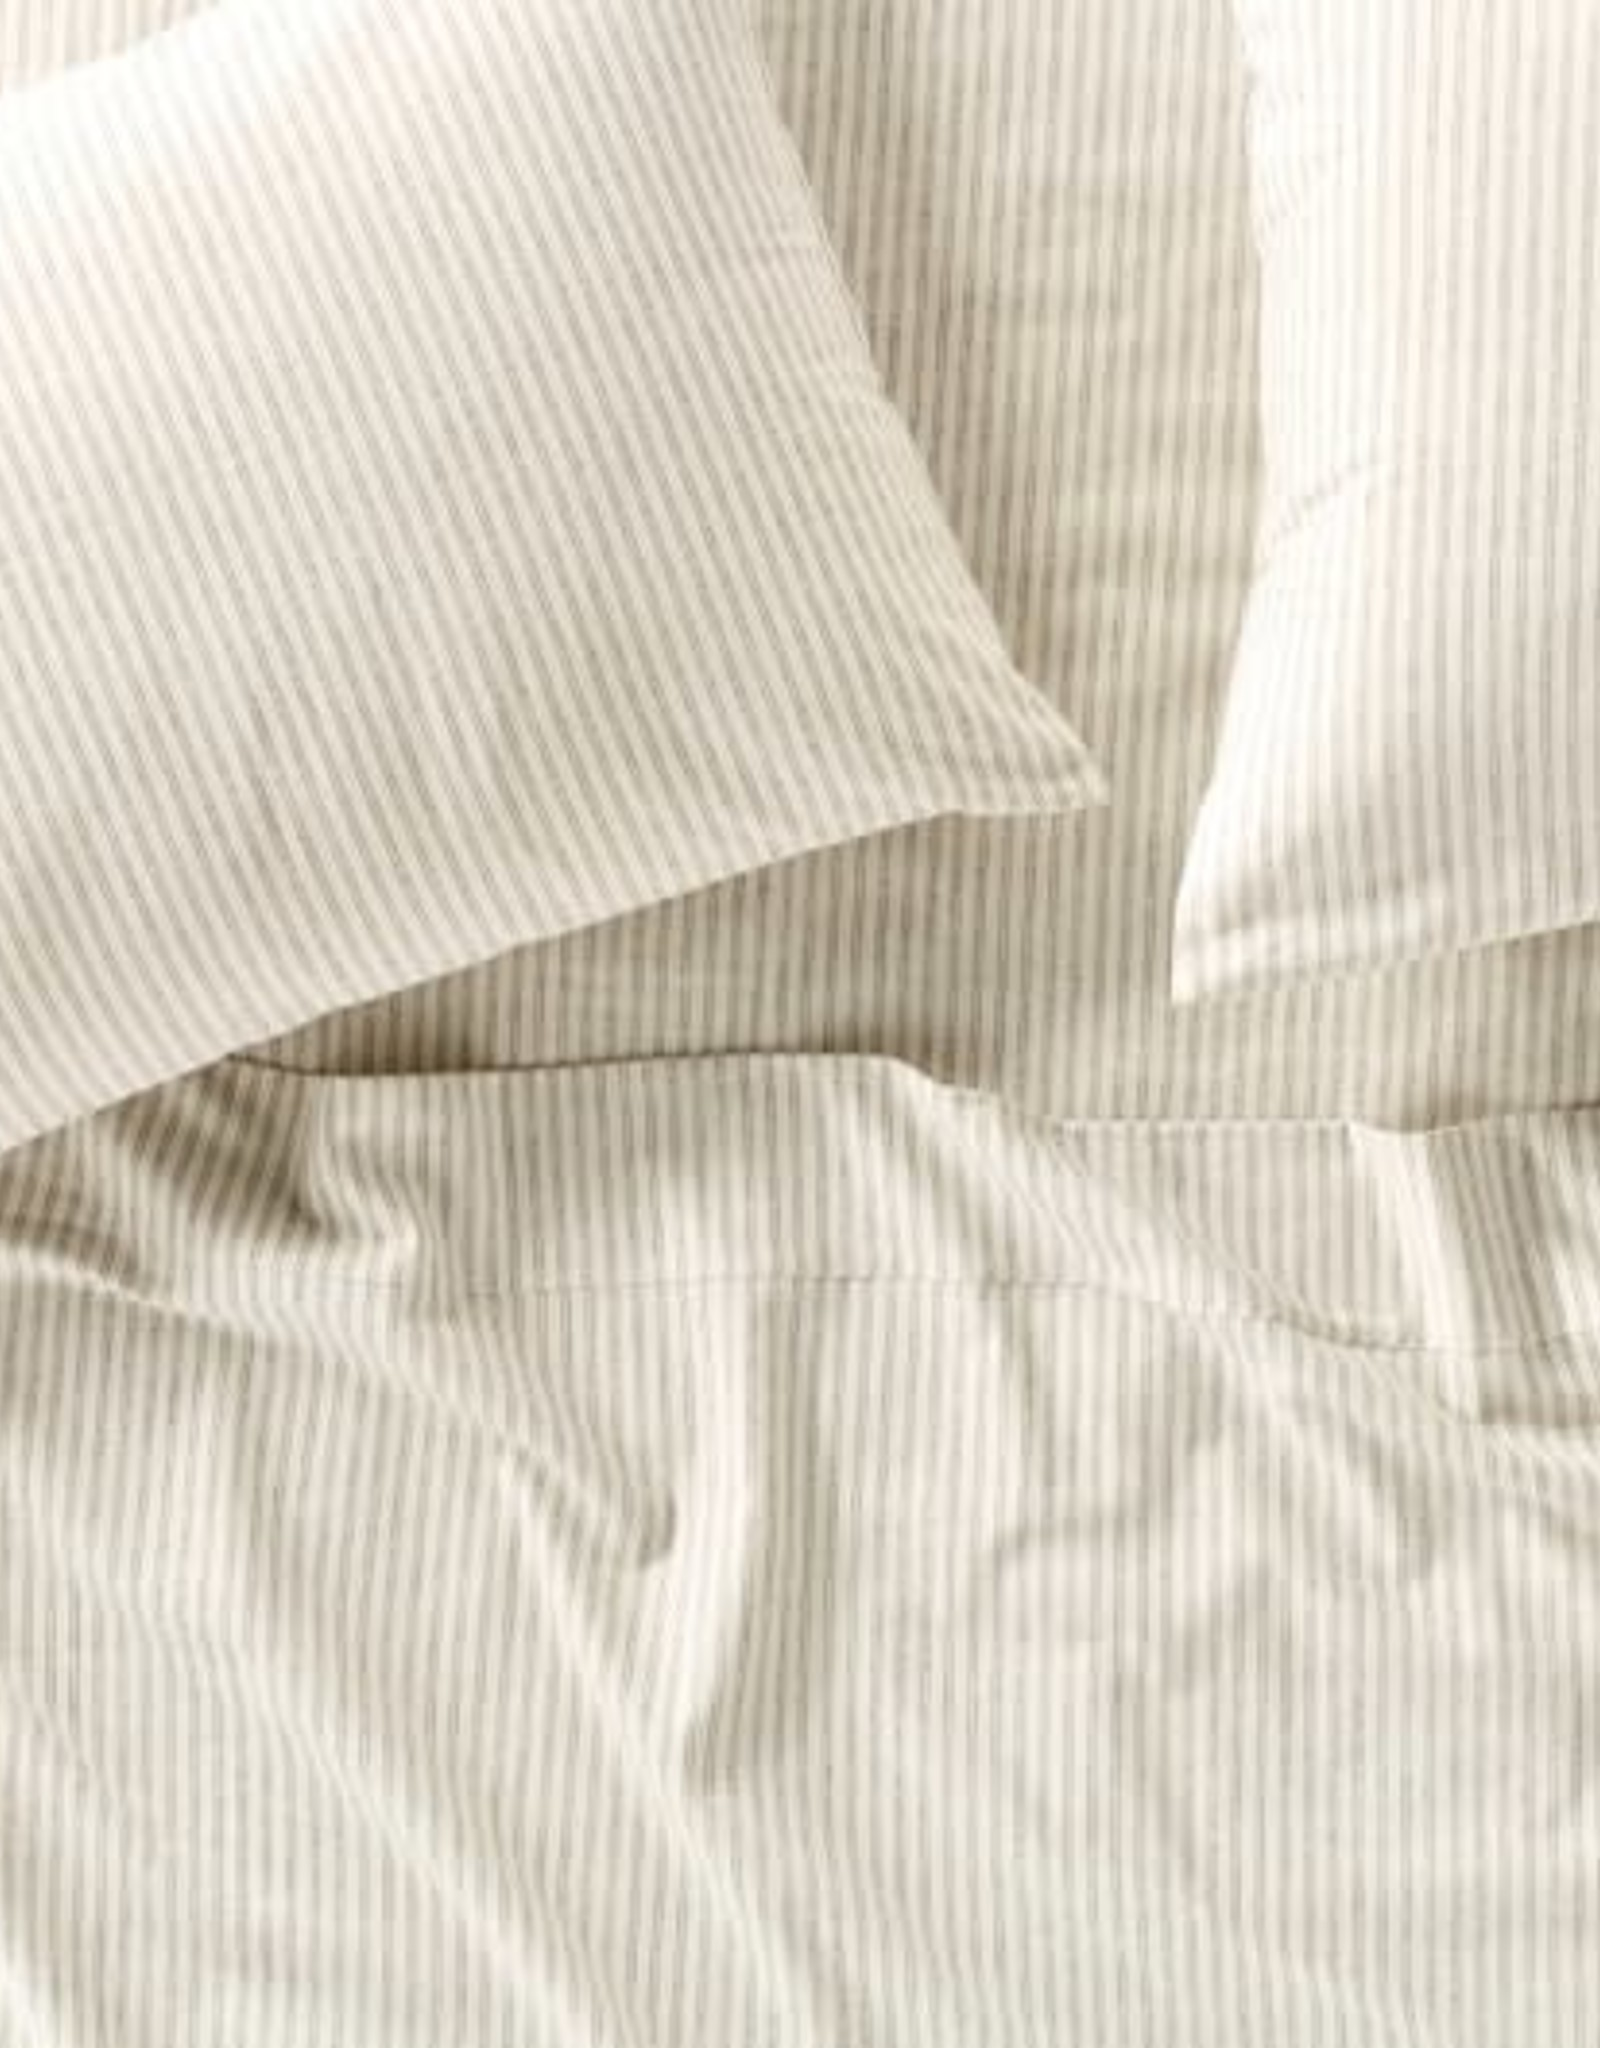 Cloud Brushed Flannel Sheet Set Undyed with Charcoal Stripe